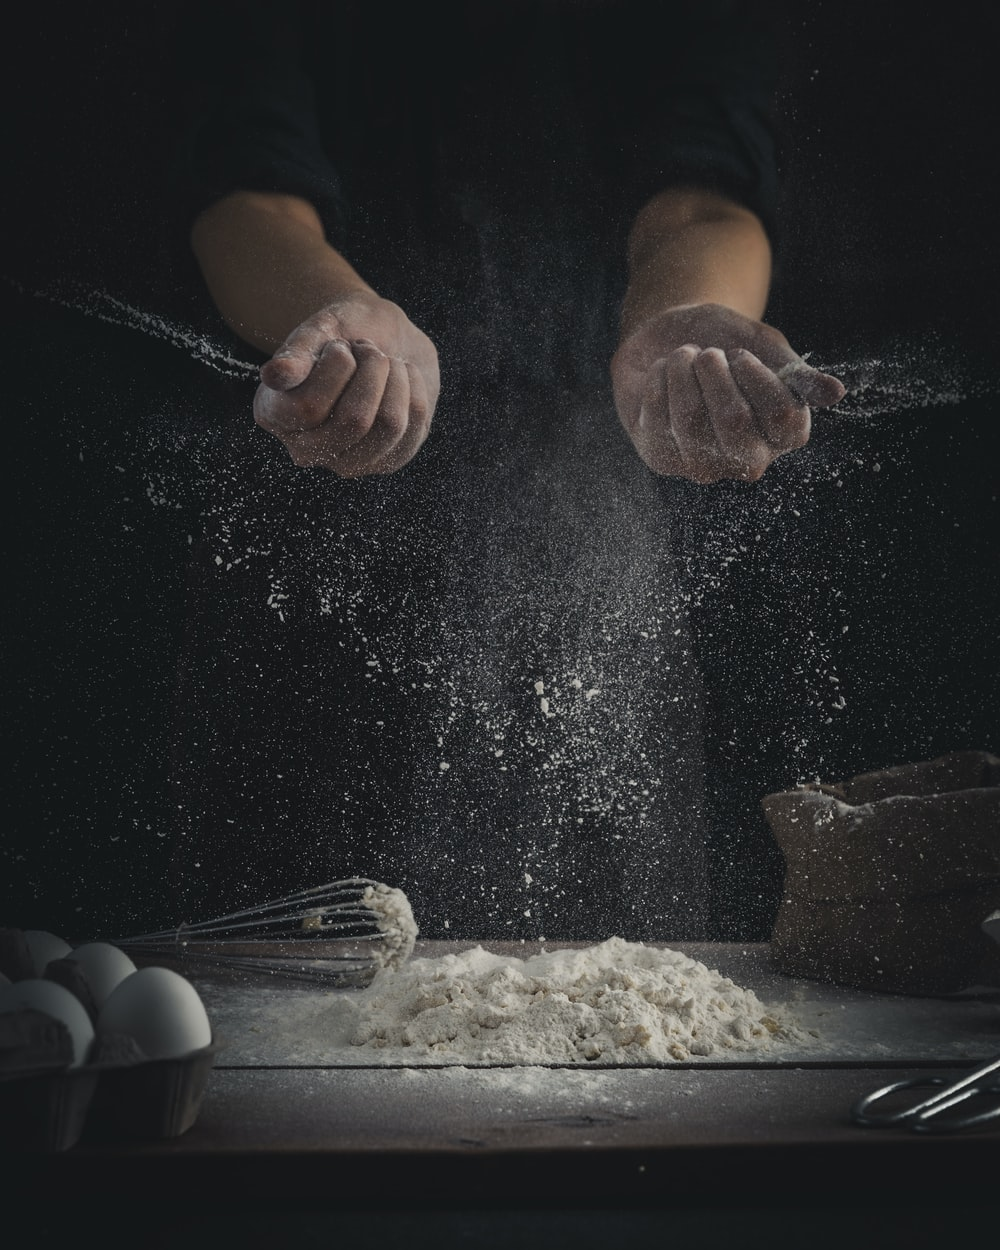 person pouring flour on table beside eggs and whisk